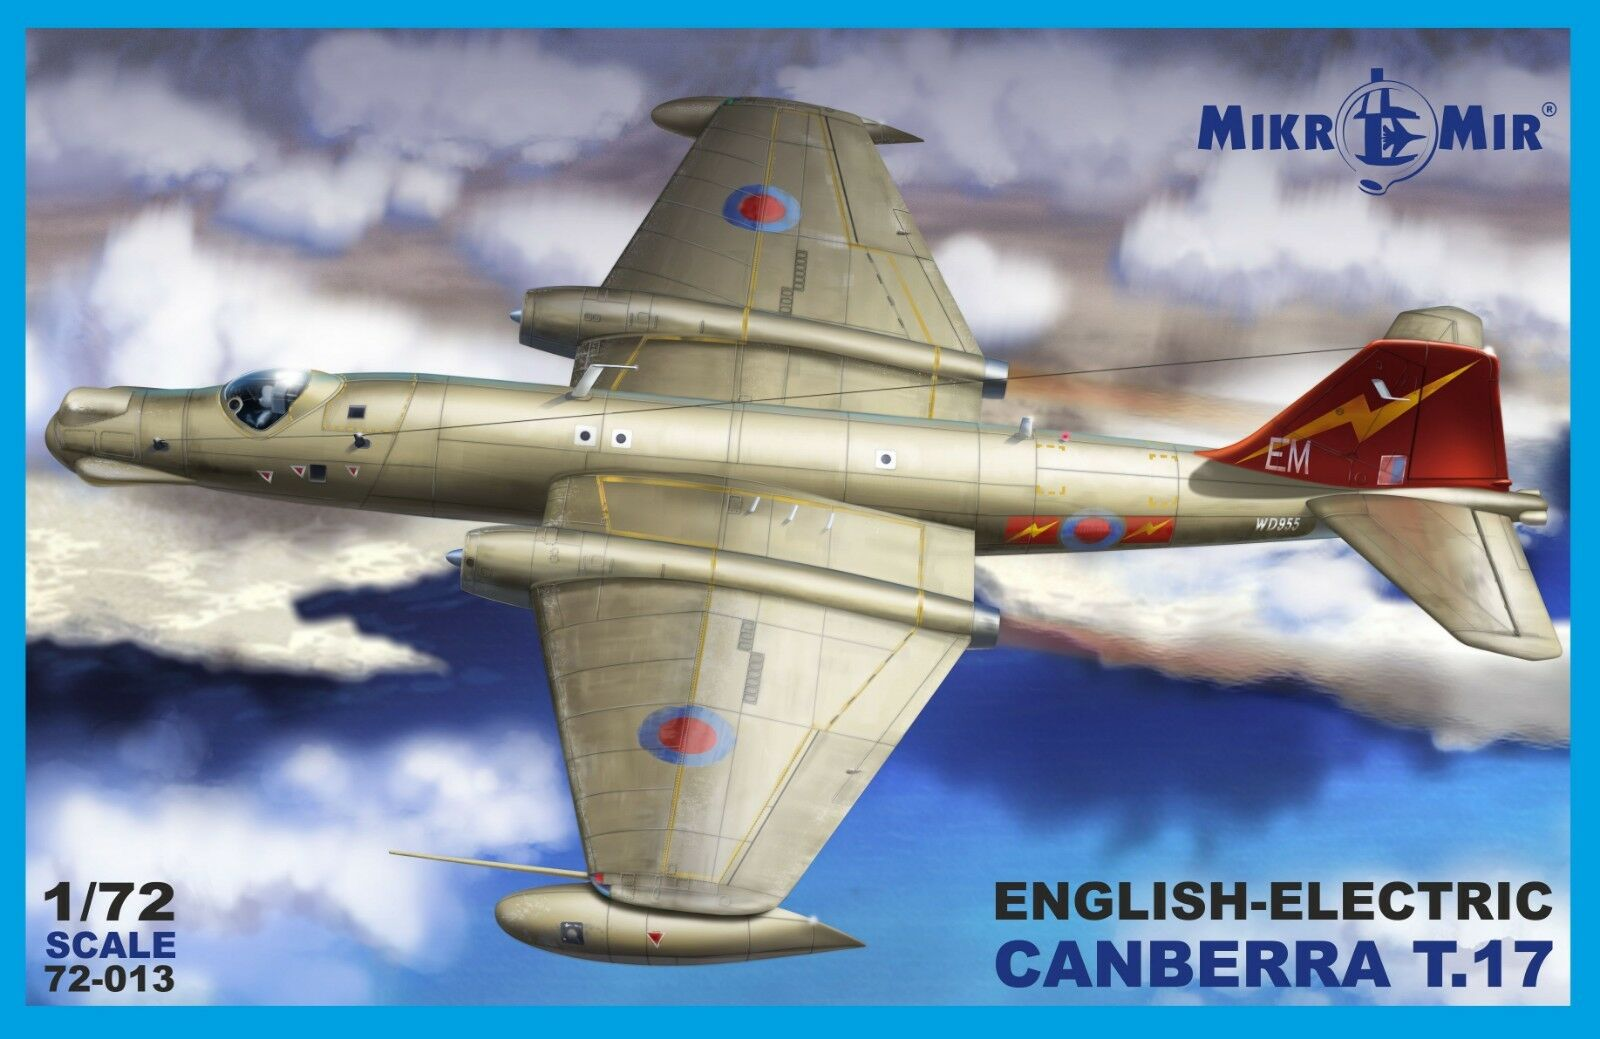 Plastic model airplane ENGLISH ELECTRIC CANBERRA T.17 1 72 scale MicroMir 72-013